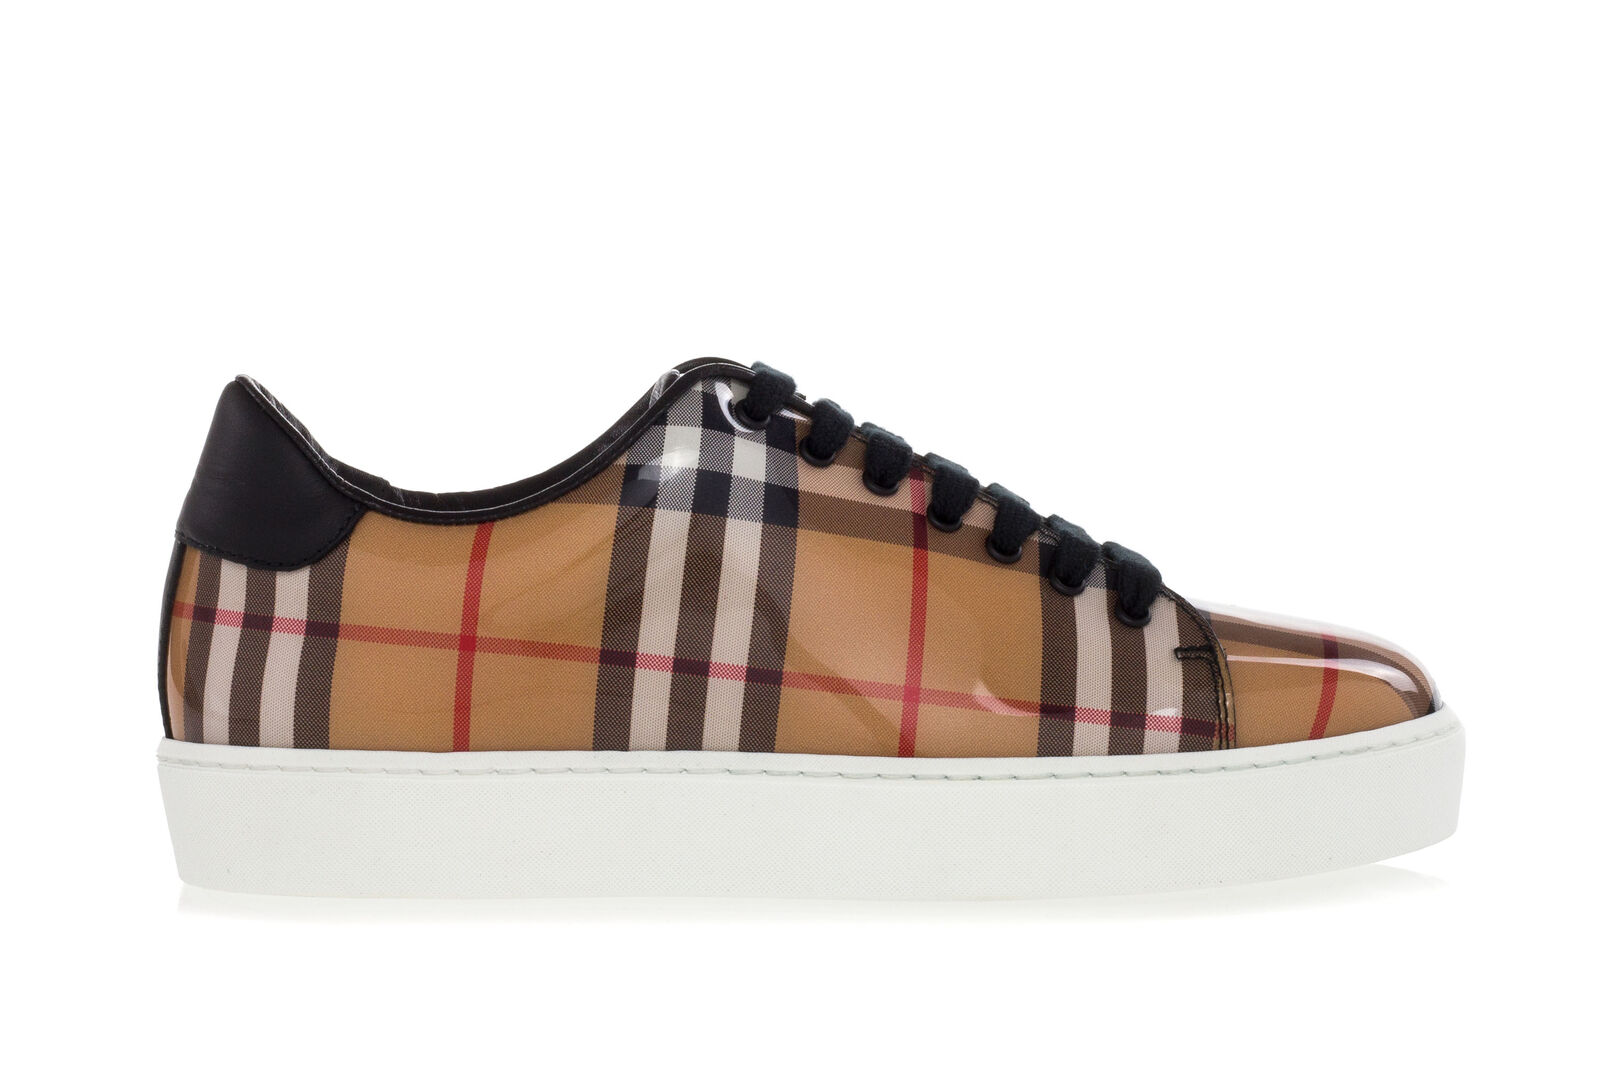 Burberry Chaussures Femmes Baskets Westford Brillant-Finish Vintage Check Basket